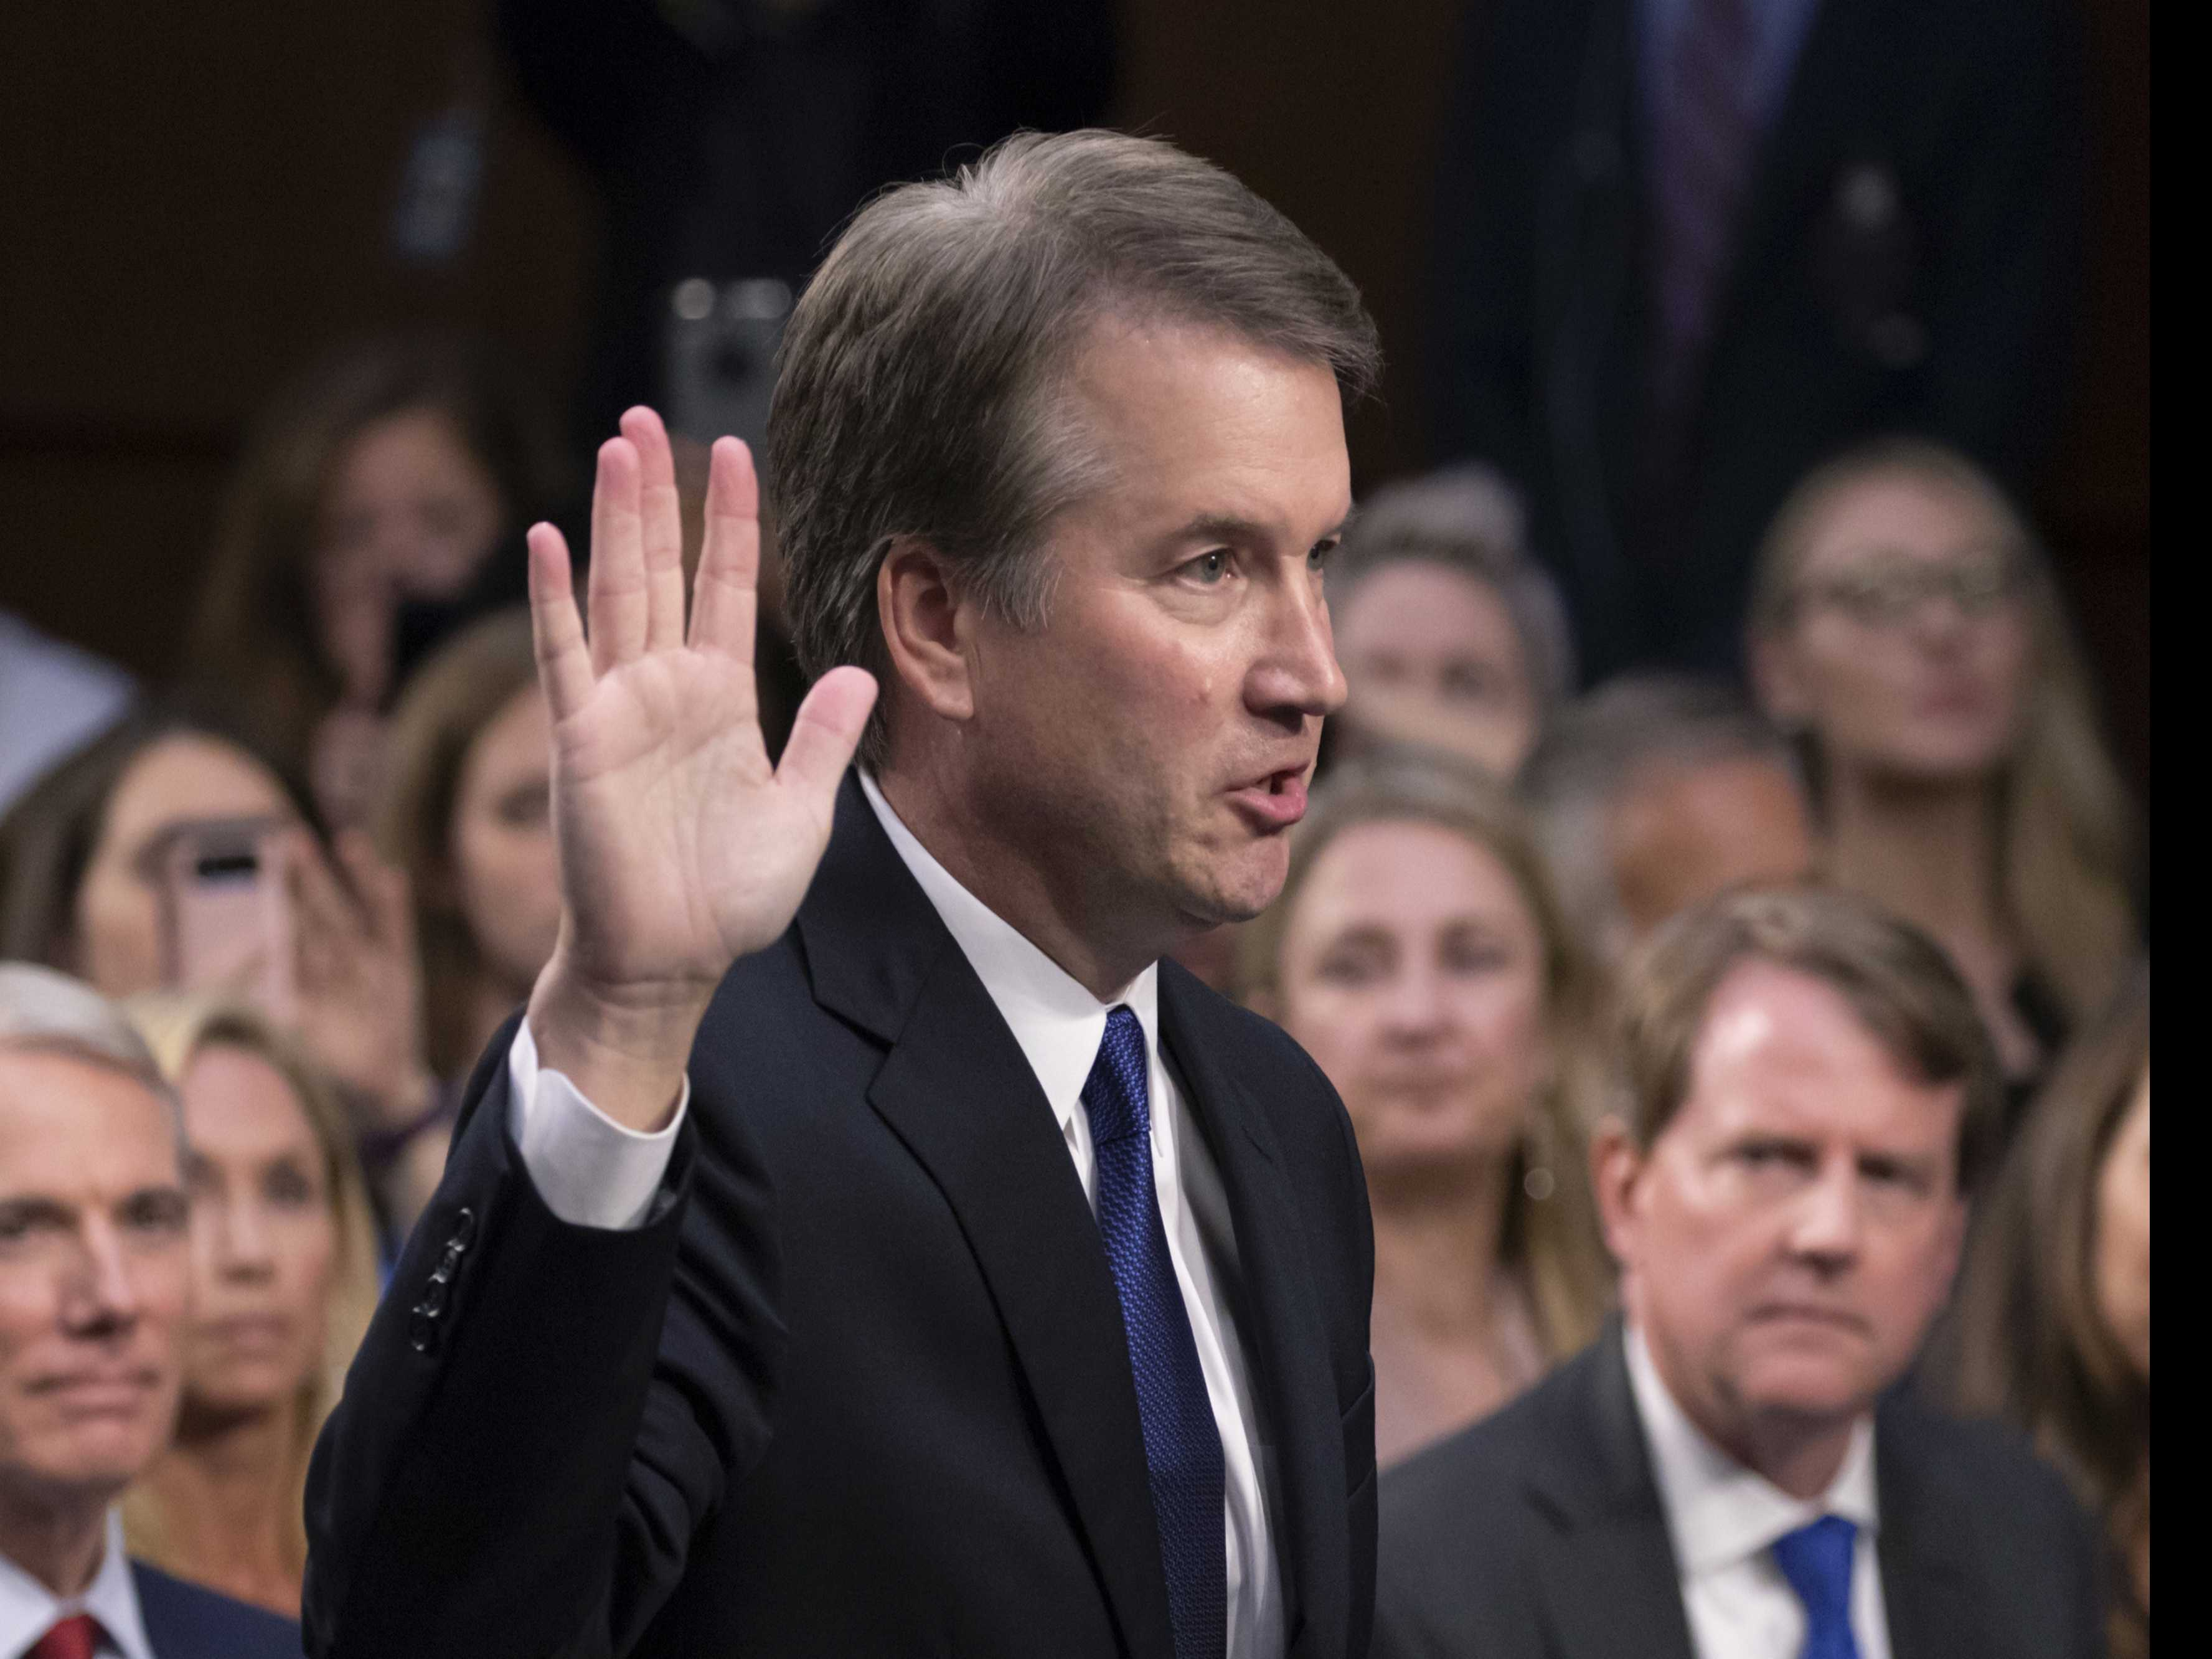 How 65 Women Came to Kavanaugh's Defense in Matter of Hours